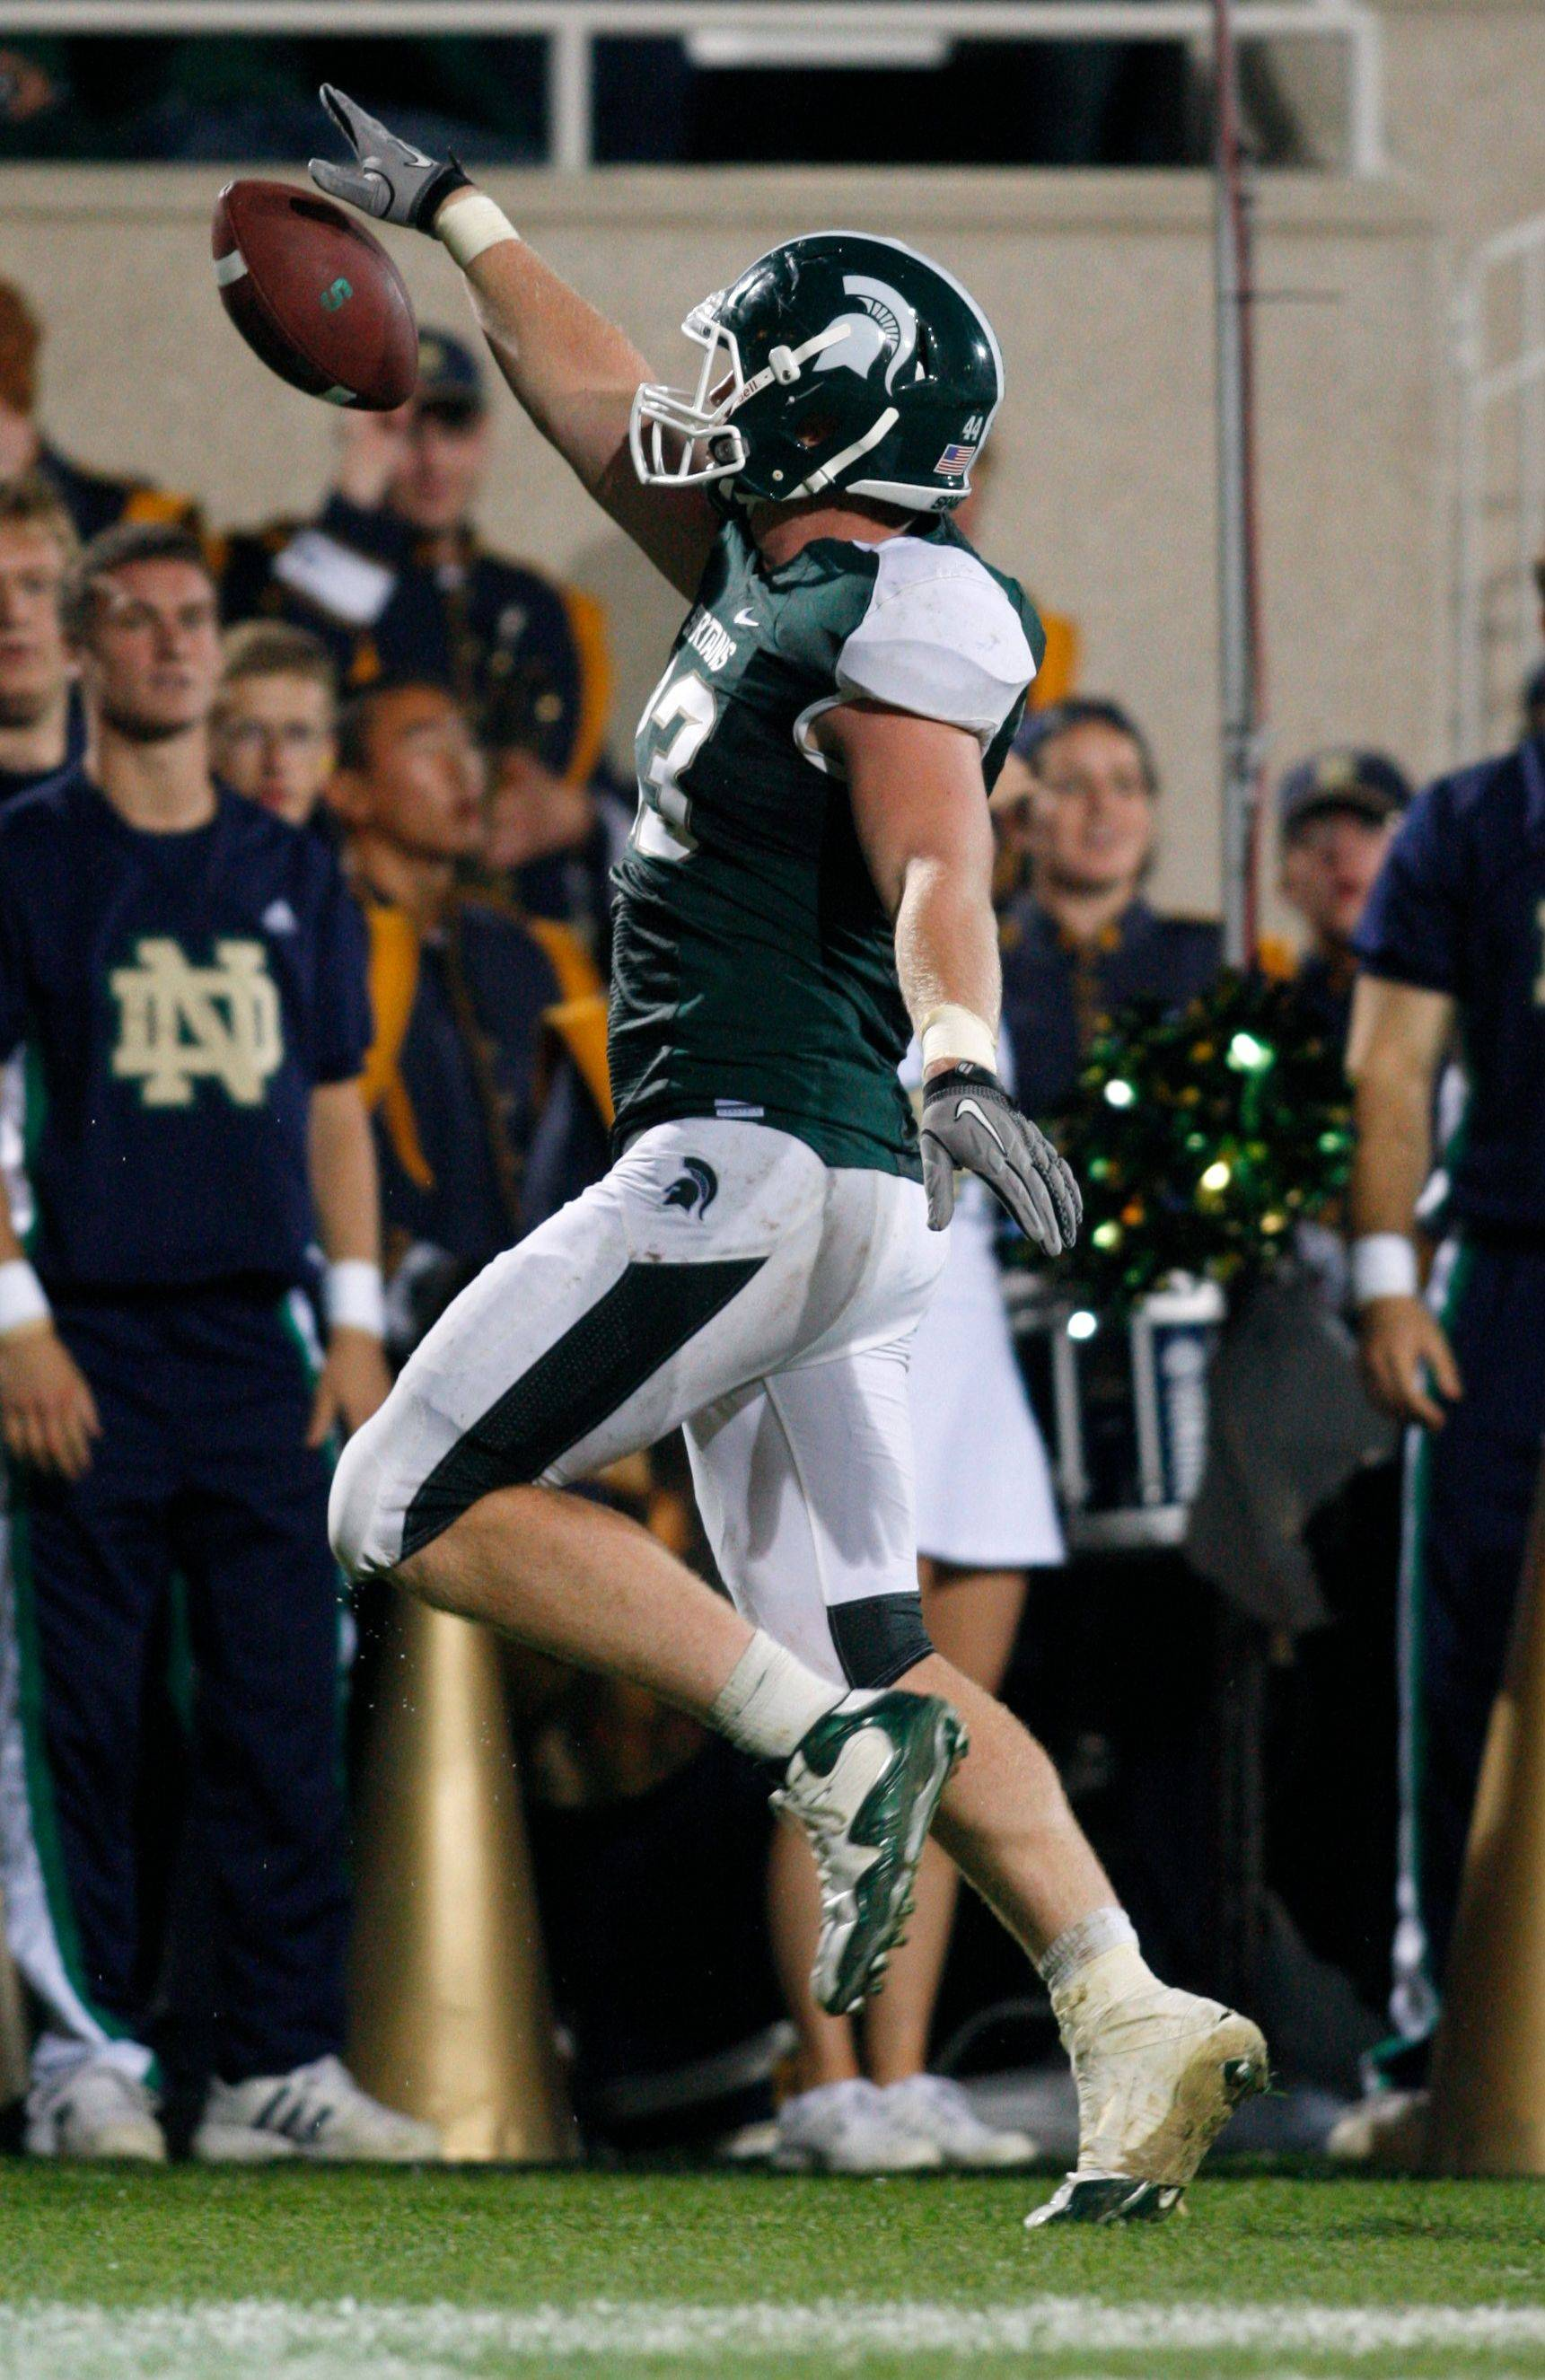 Michigan State tight end Charlie Gantt celebrates as he scores the game-winning touchdown on a 29-yard pass reception off a fake field goal during the Spartans' victory over Notre Dame in 2010.